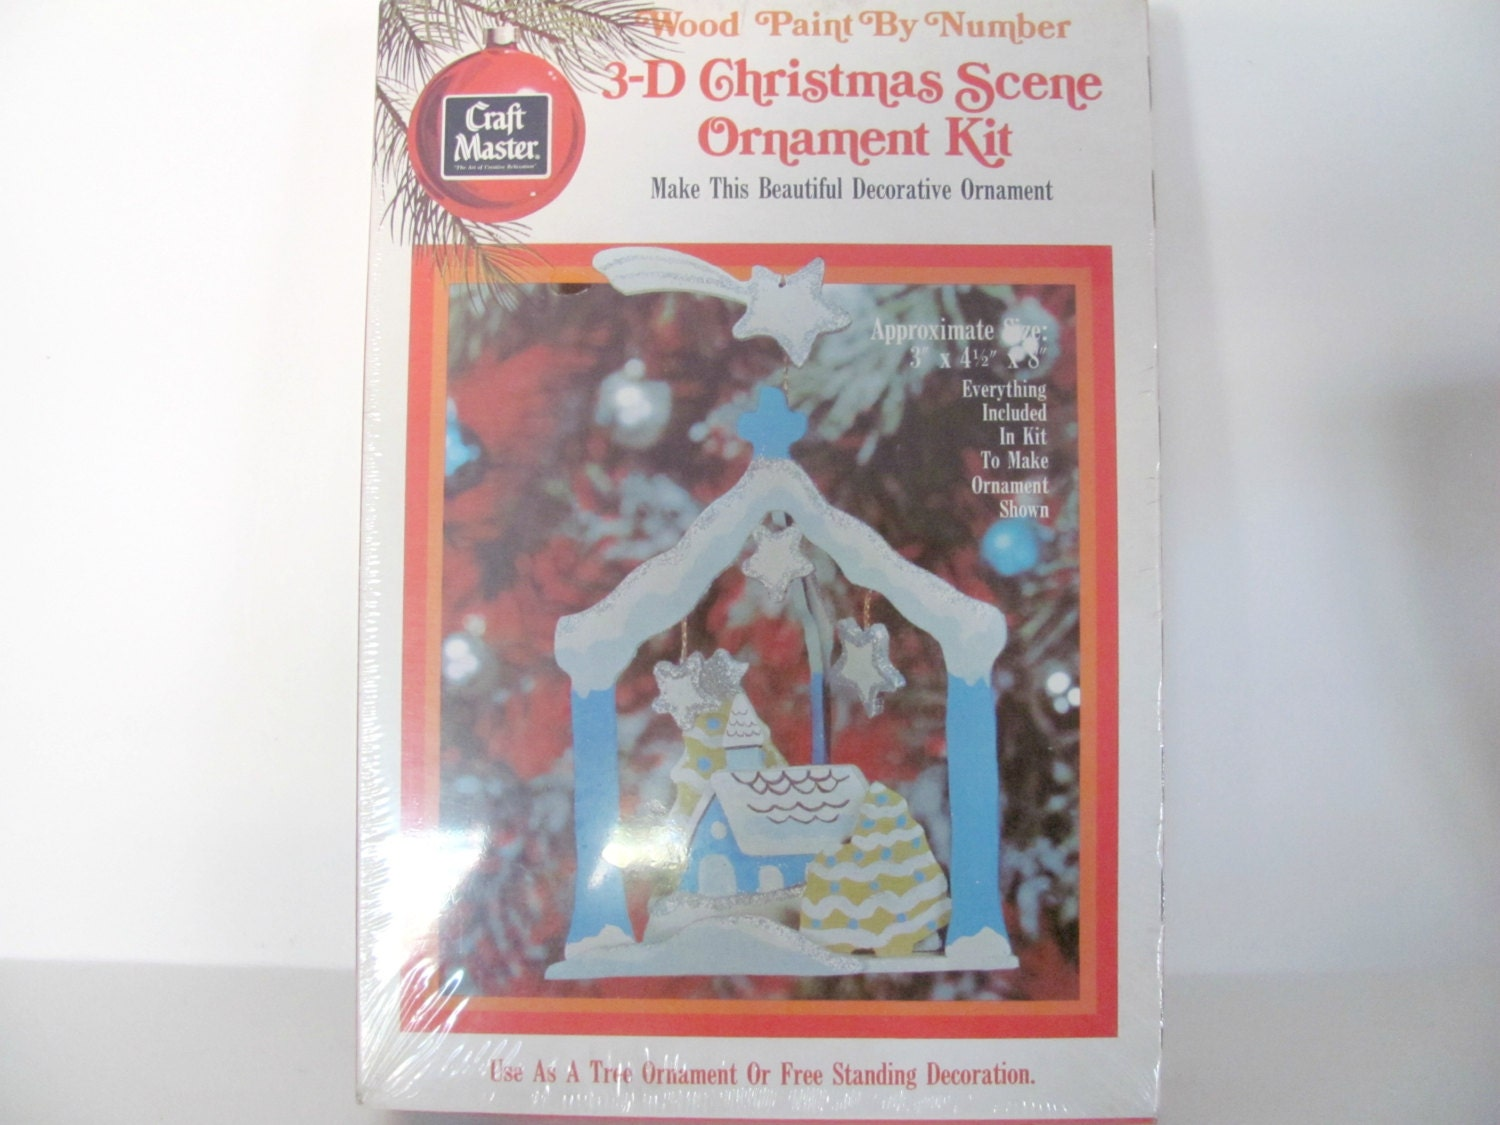 Craft master paint by number kits - Vintage Christmas Crafts 1970 S Craft Master Paint By Number Wood Ornament Kit Winter House Ornament Christmas Decor